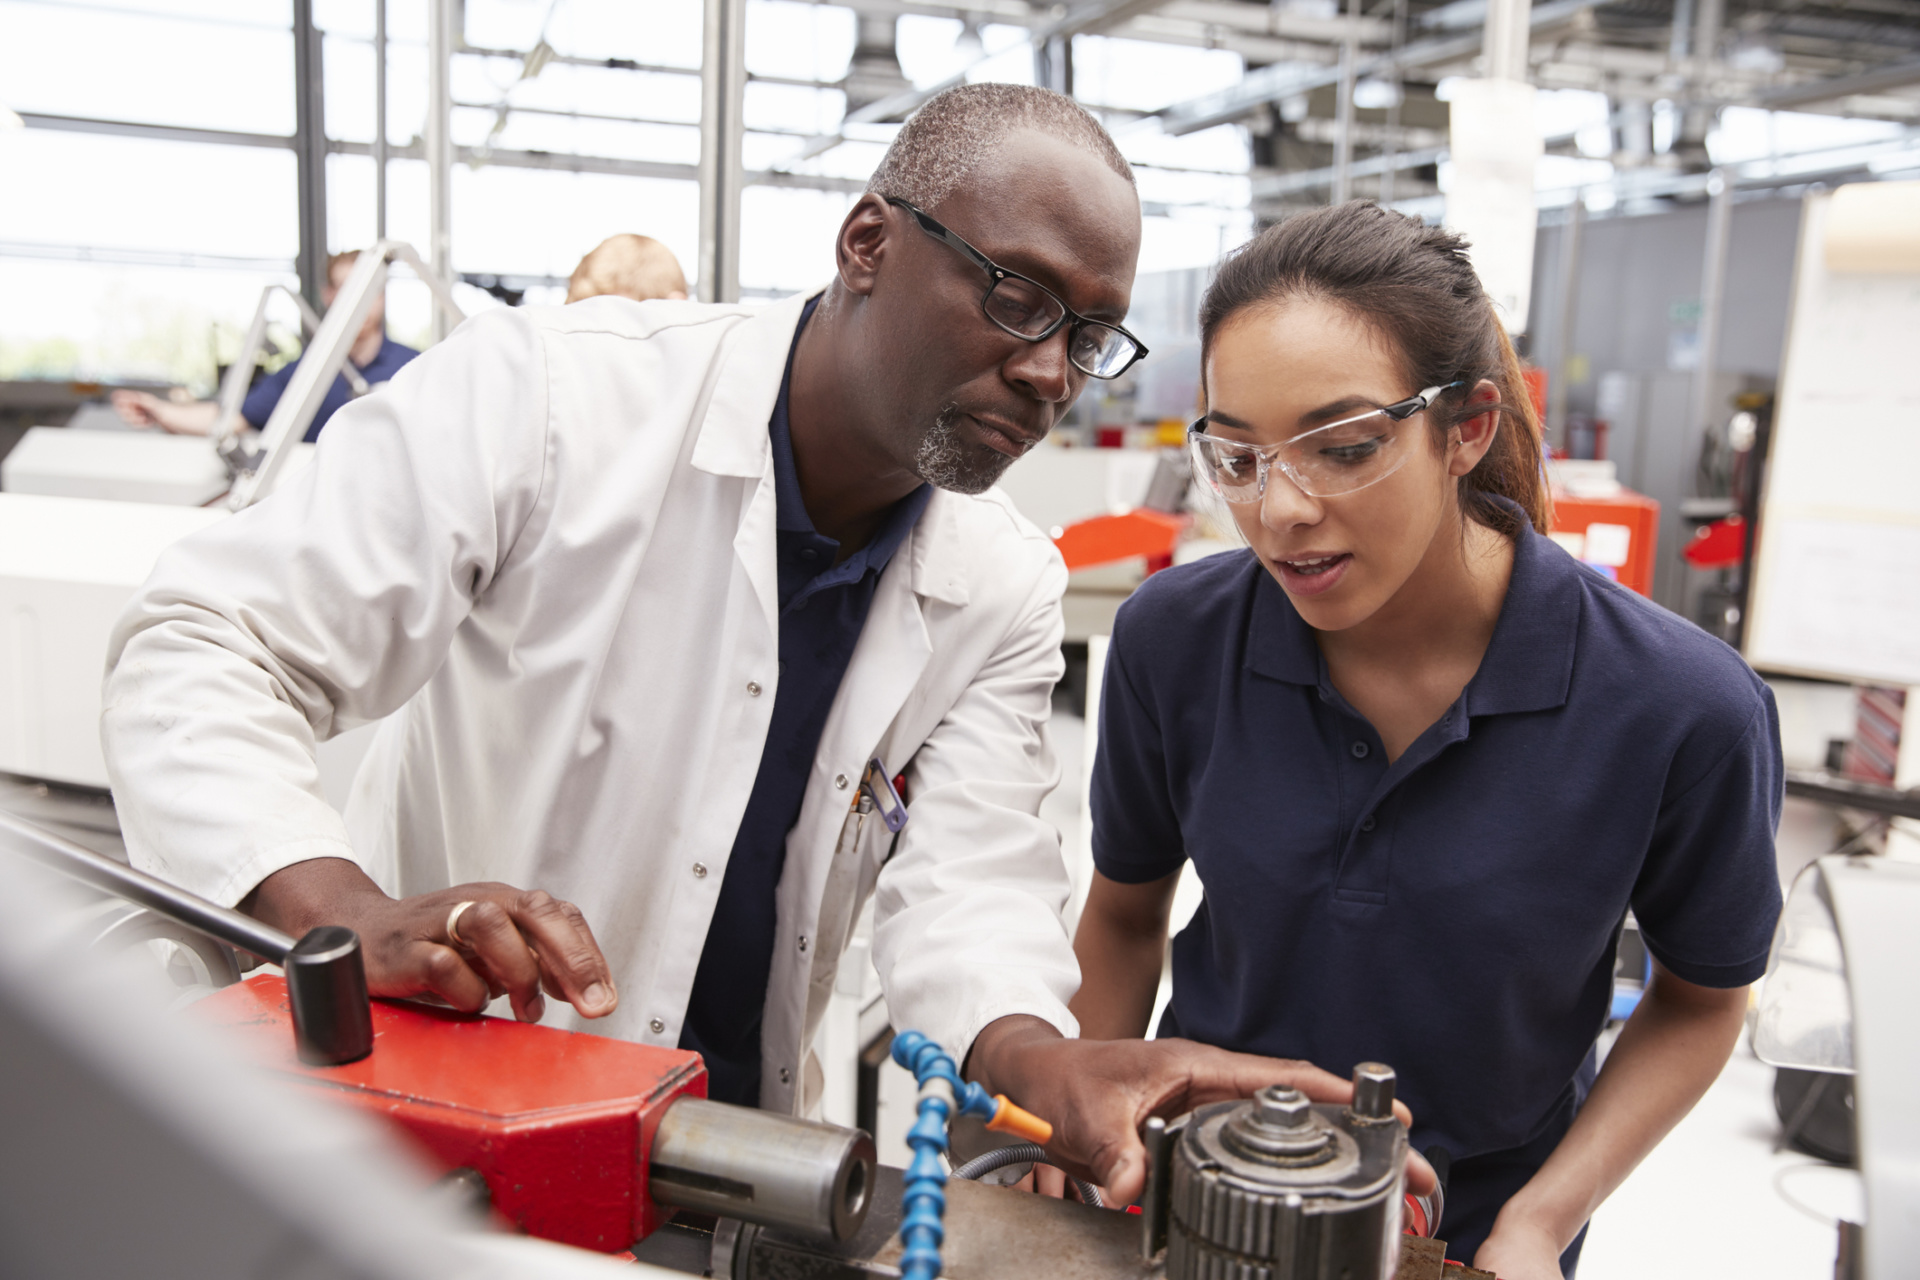 Apprenticeships Serve as Model of Skills-Based Training for Jobs of the Future